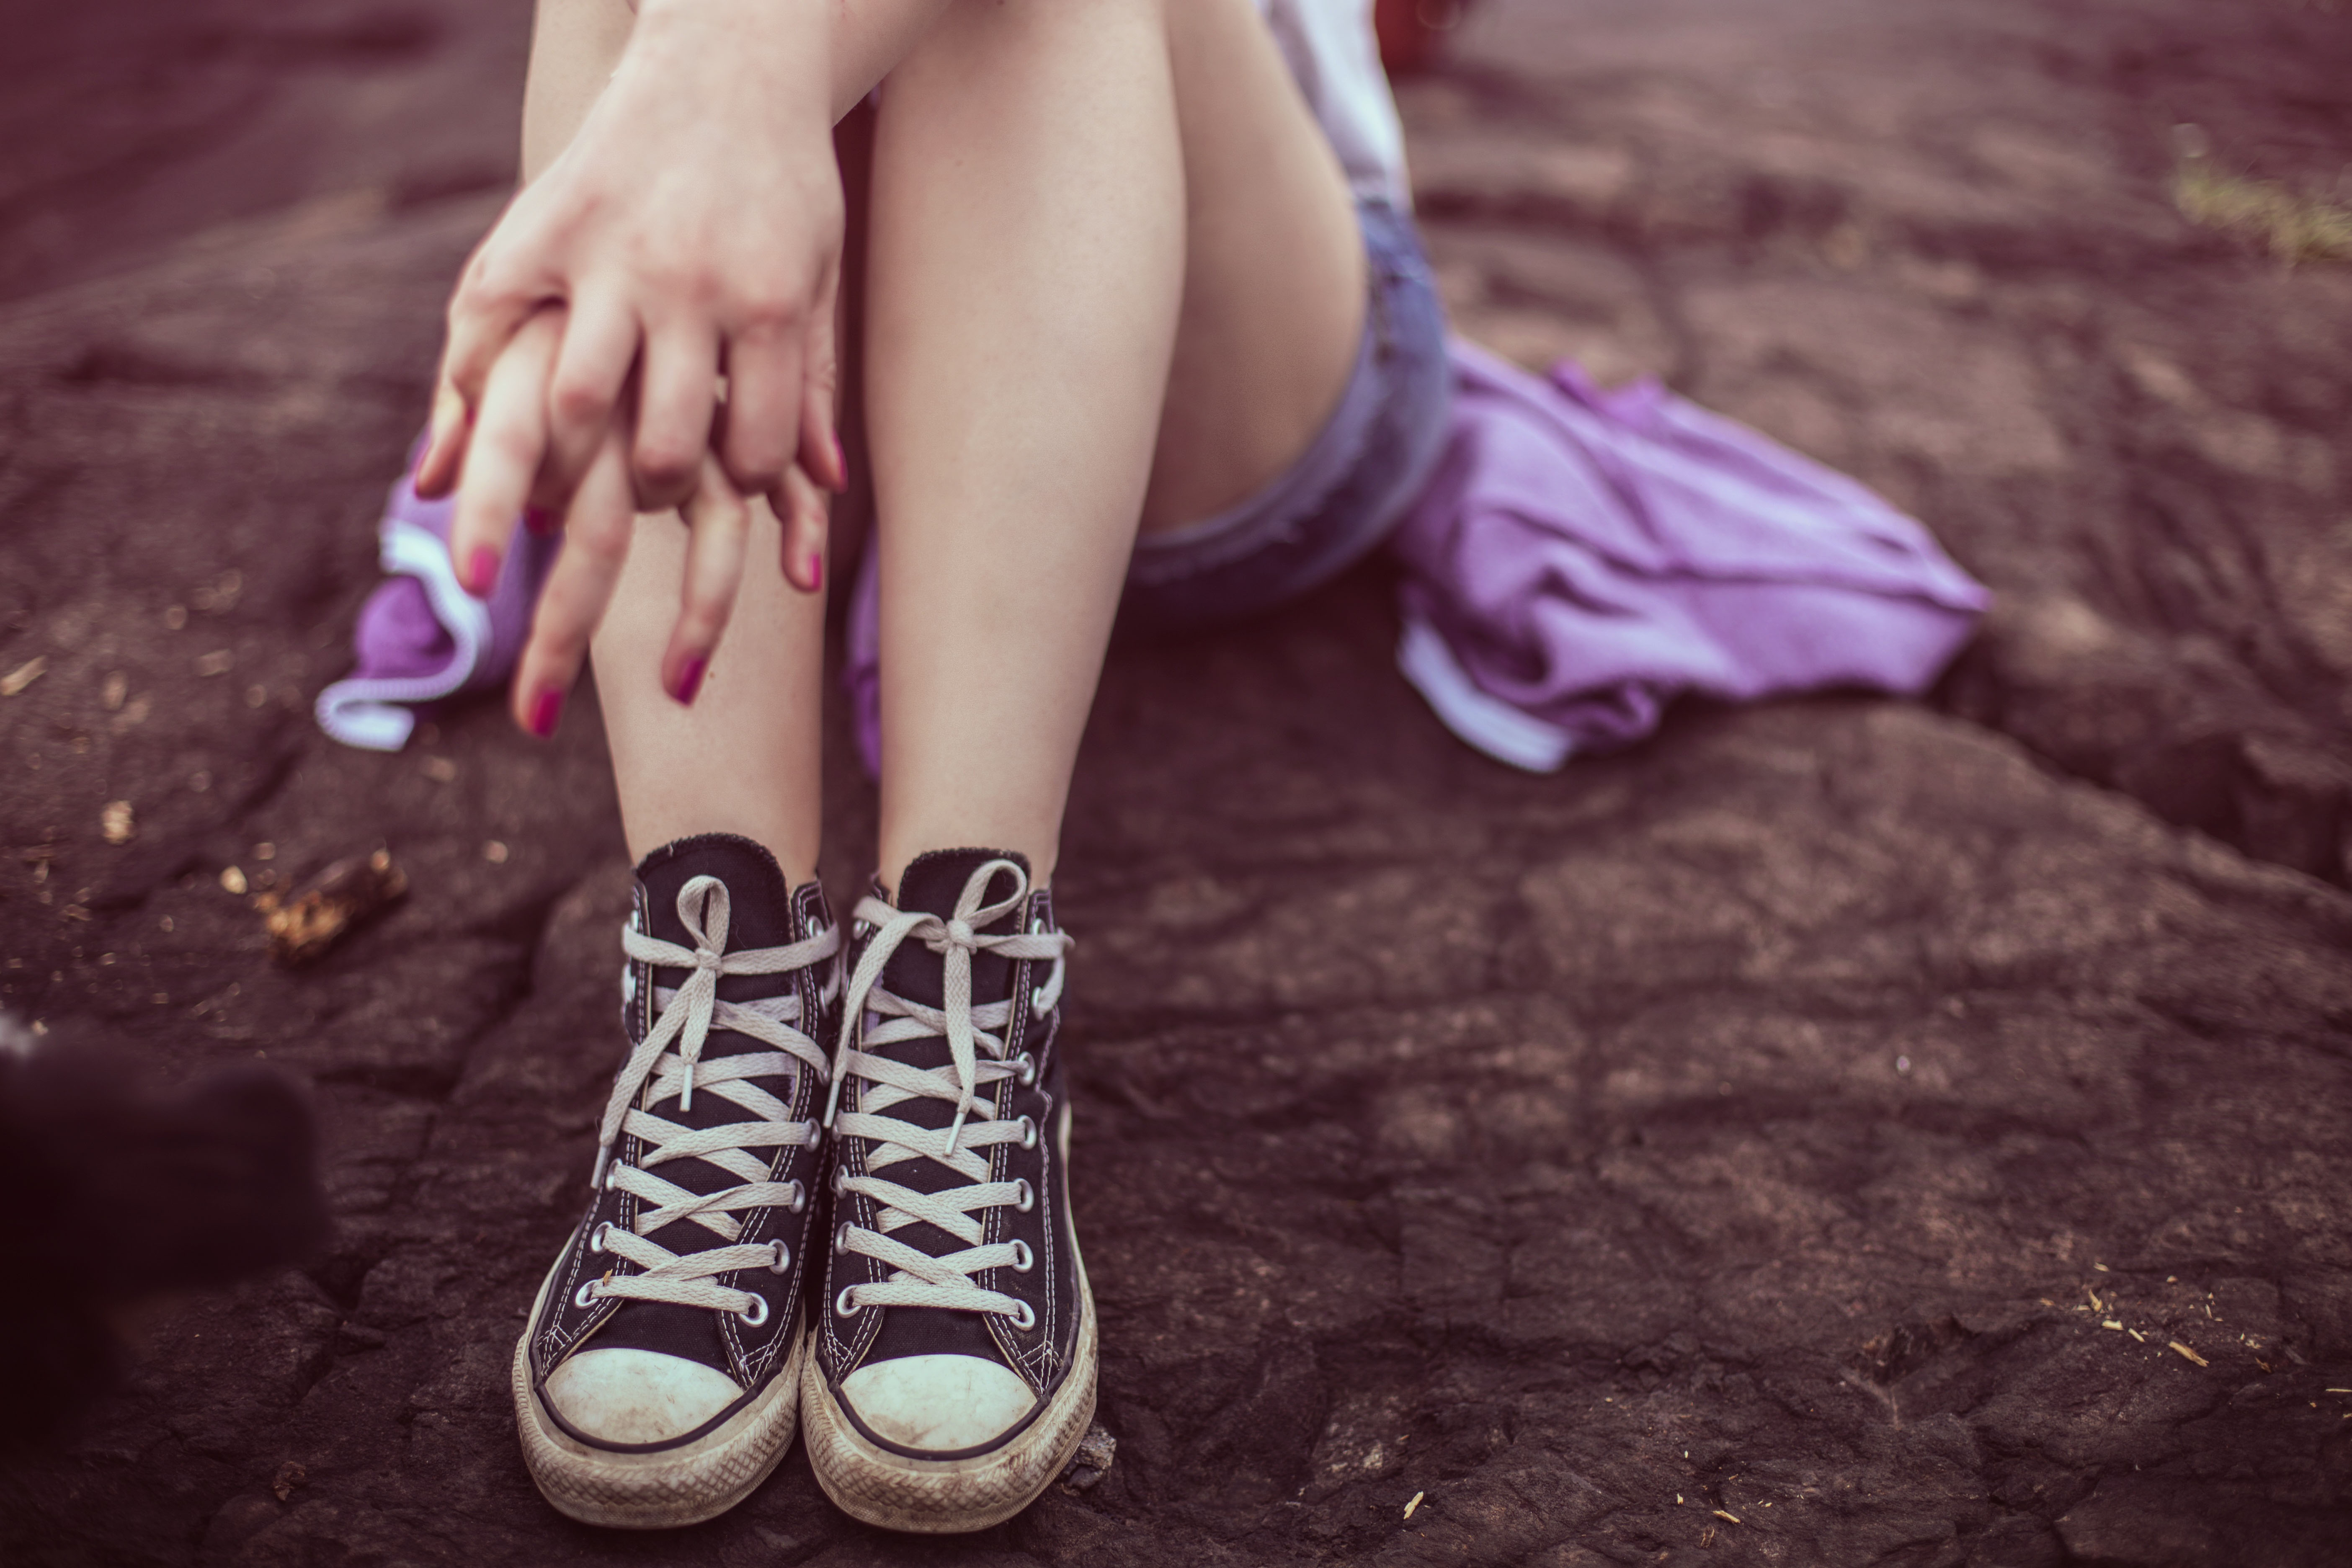 Legs, feet, young, youth, beauty